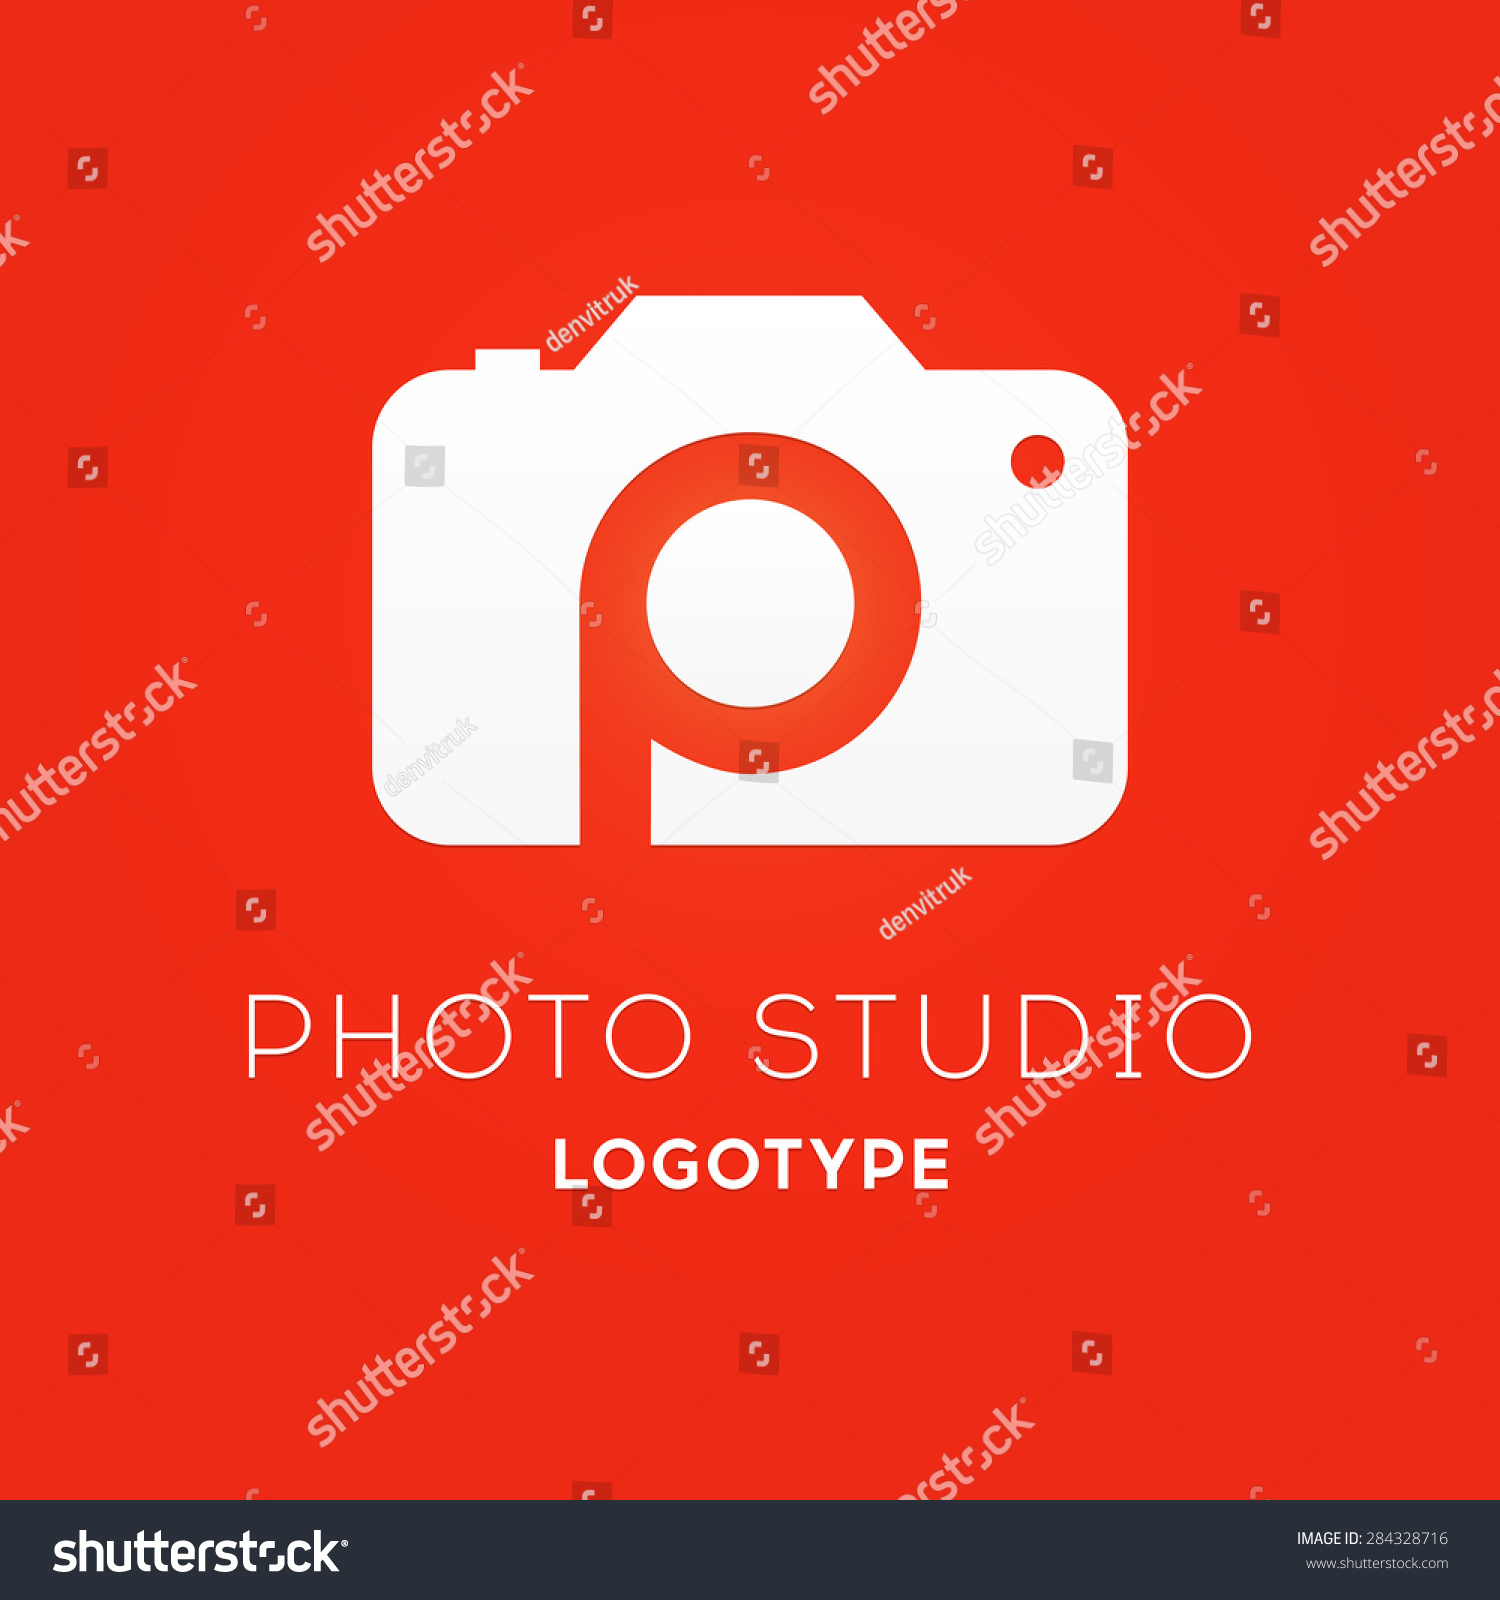 Camera Logo Design Creative Photo Studio Stock Vector ...